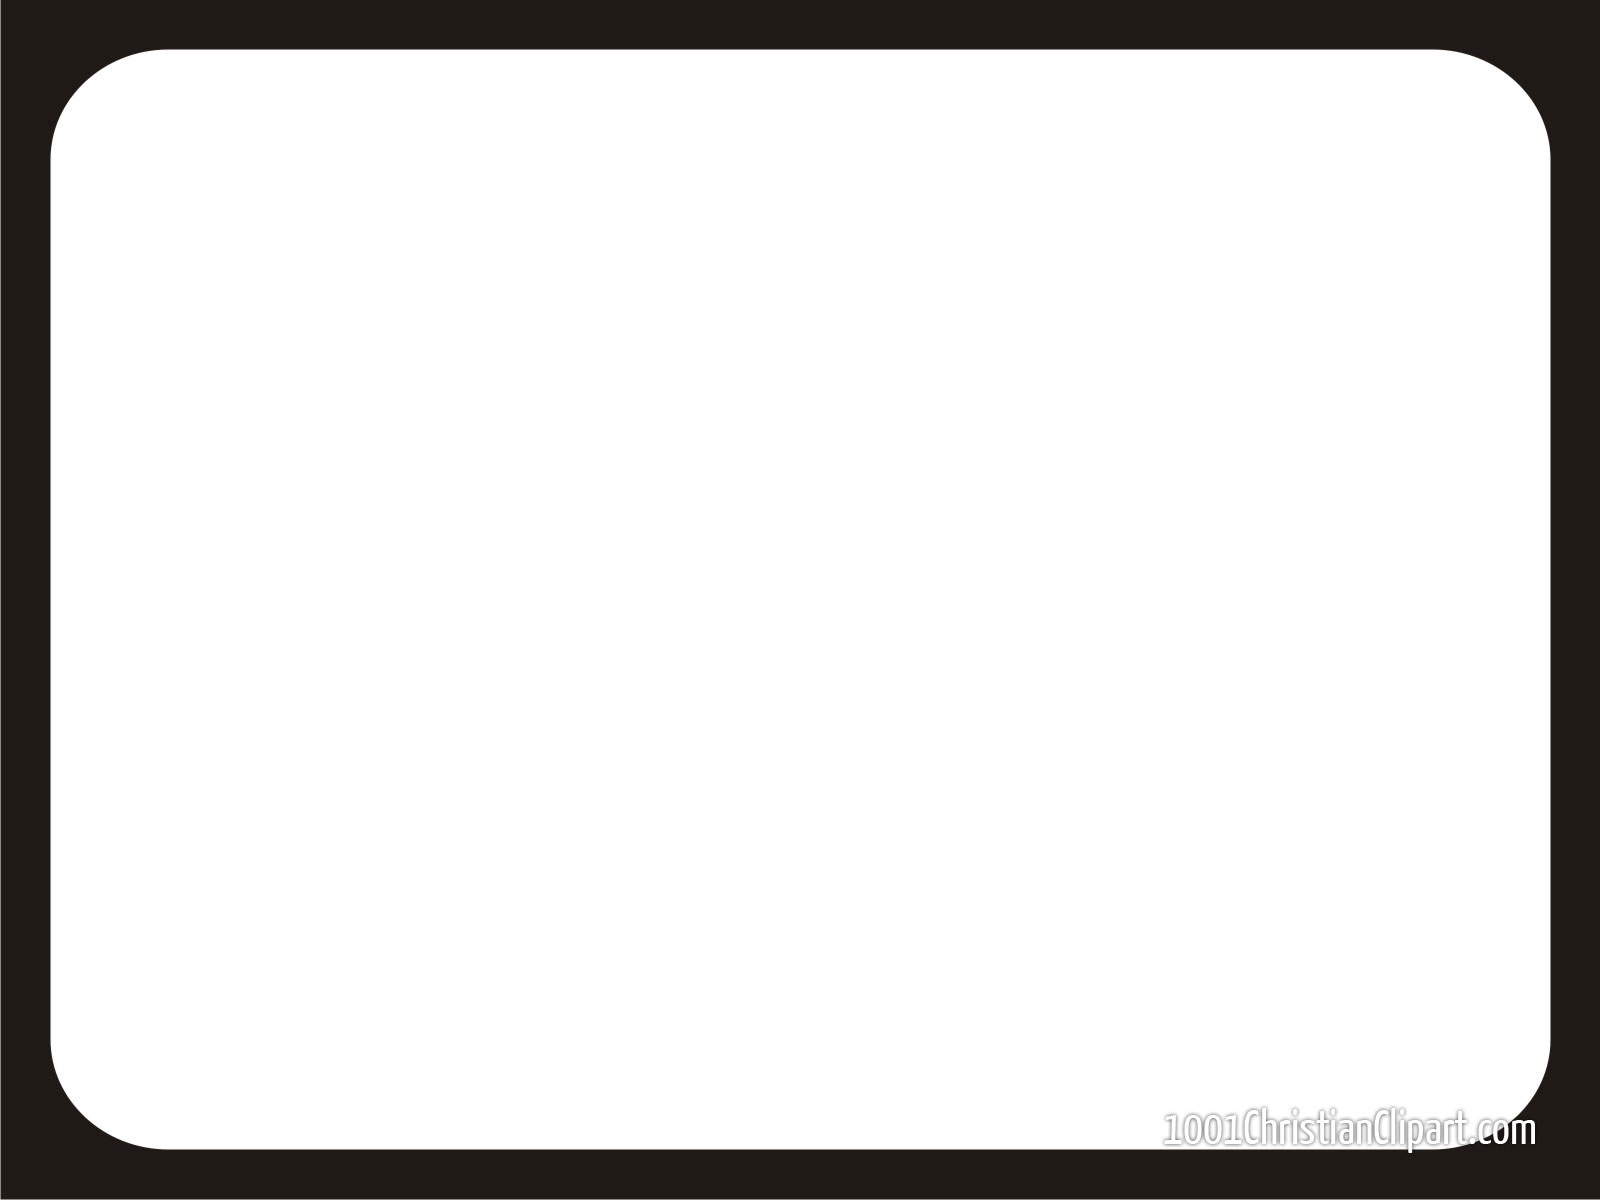 This is a simple white background with black border for PowerPoint